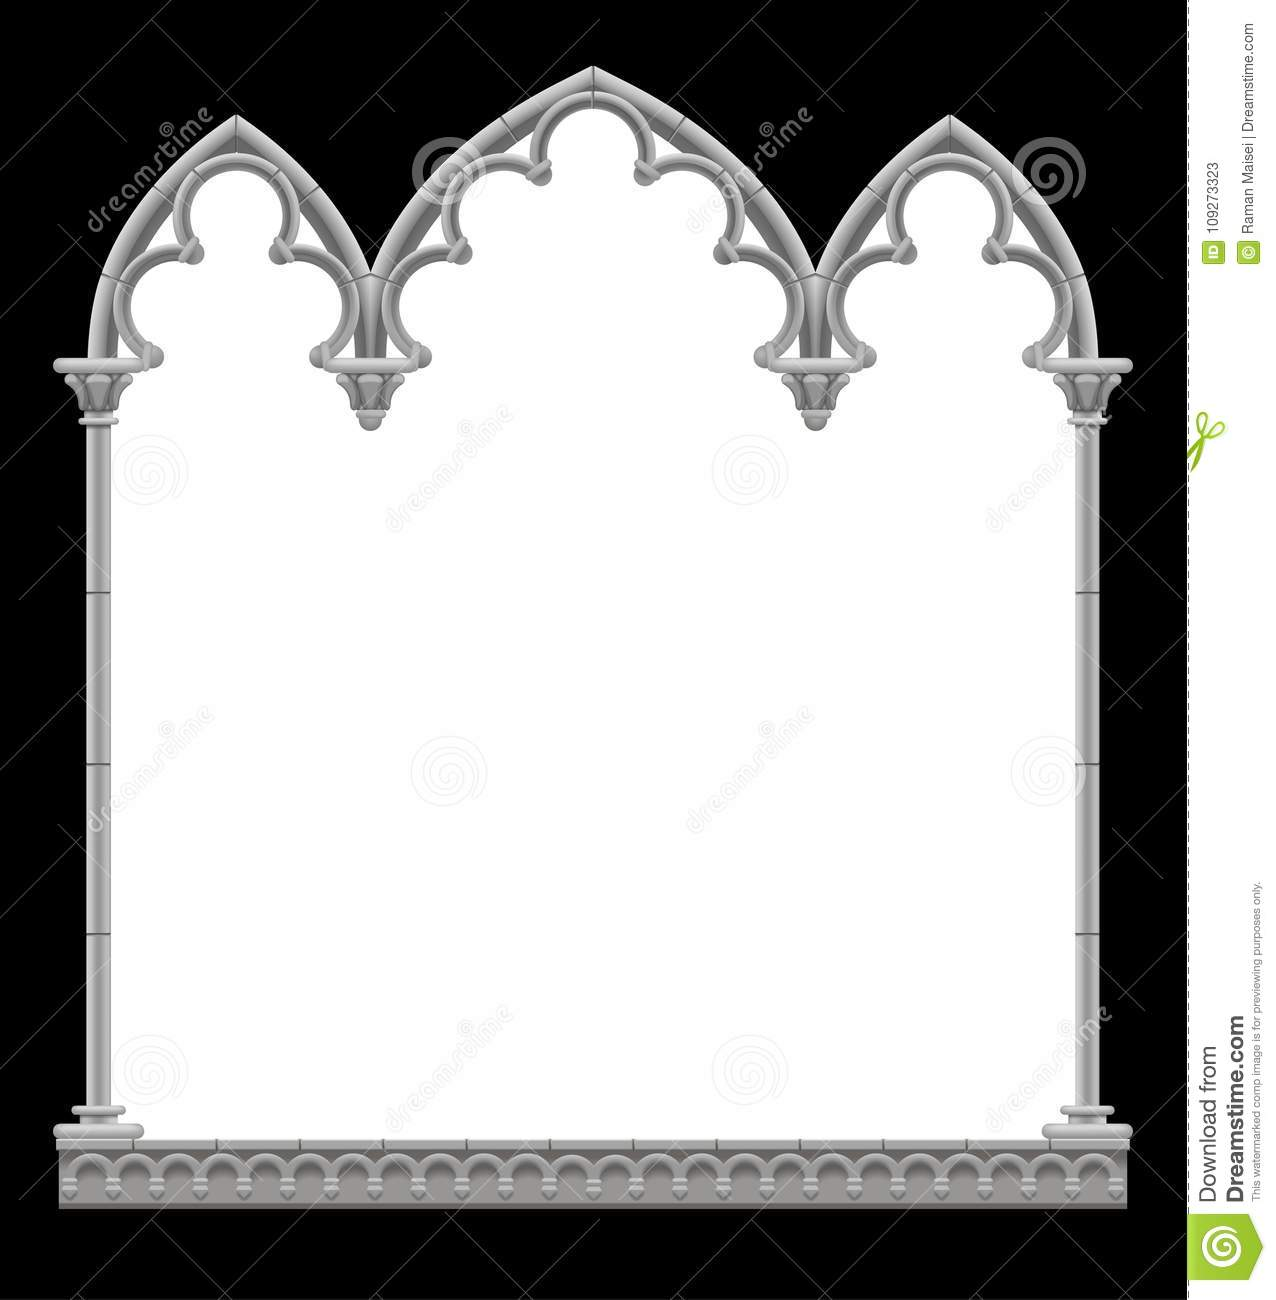 Classic Gothic Architectural Decorative Frame In Black And White